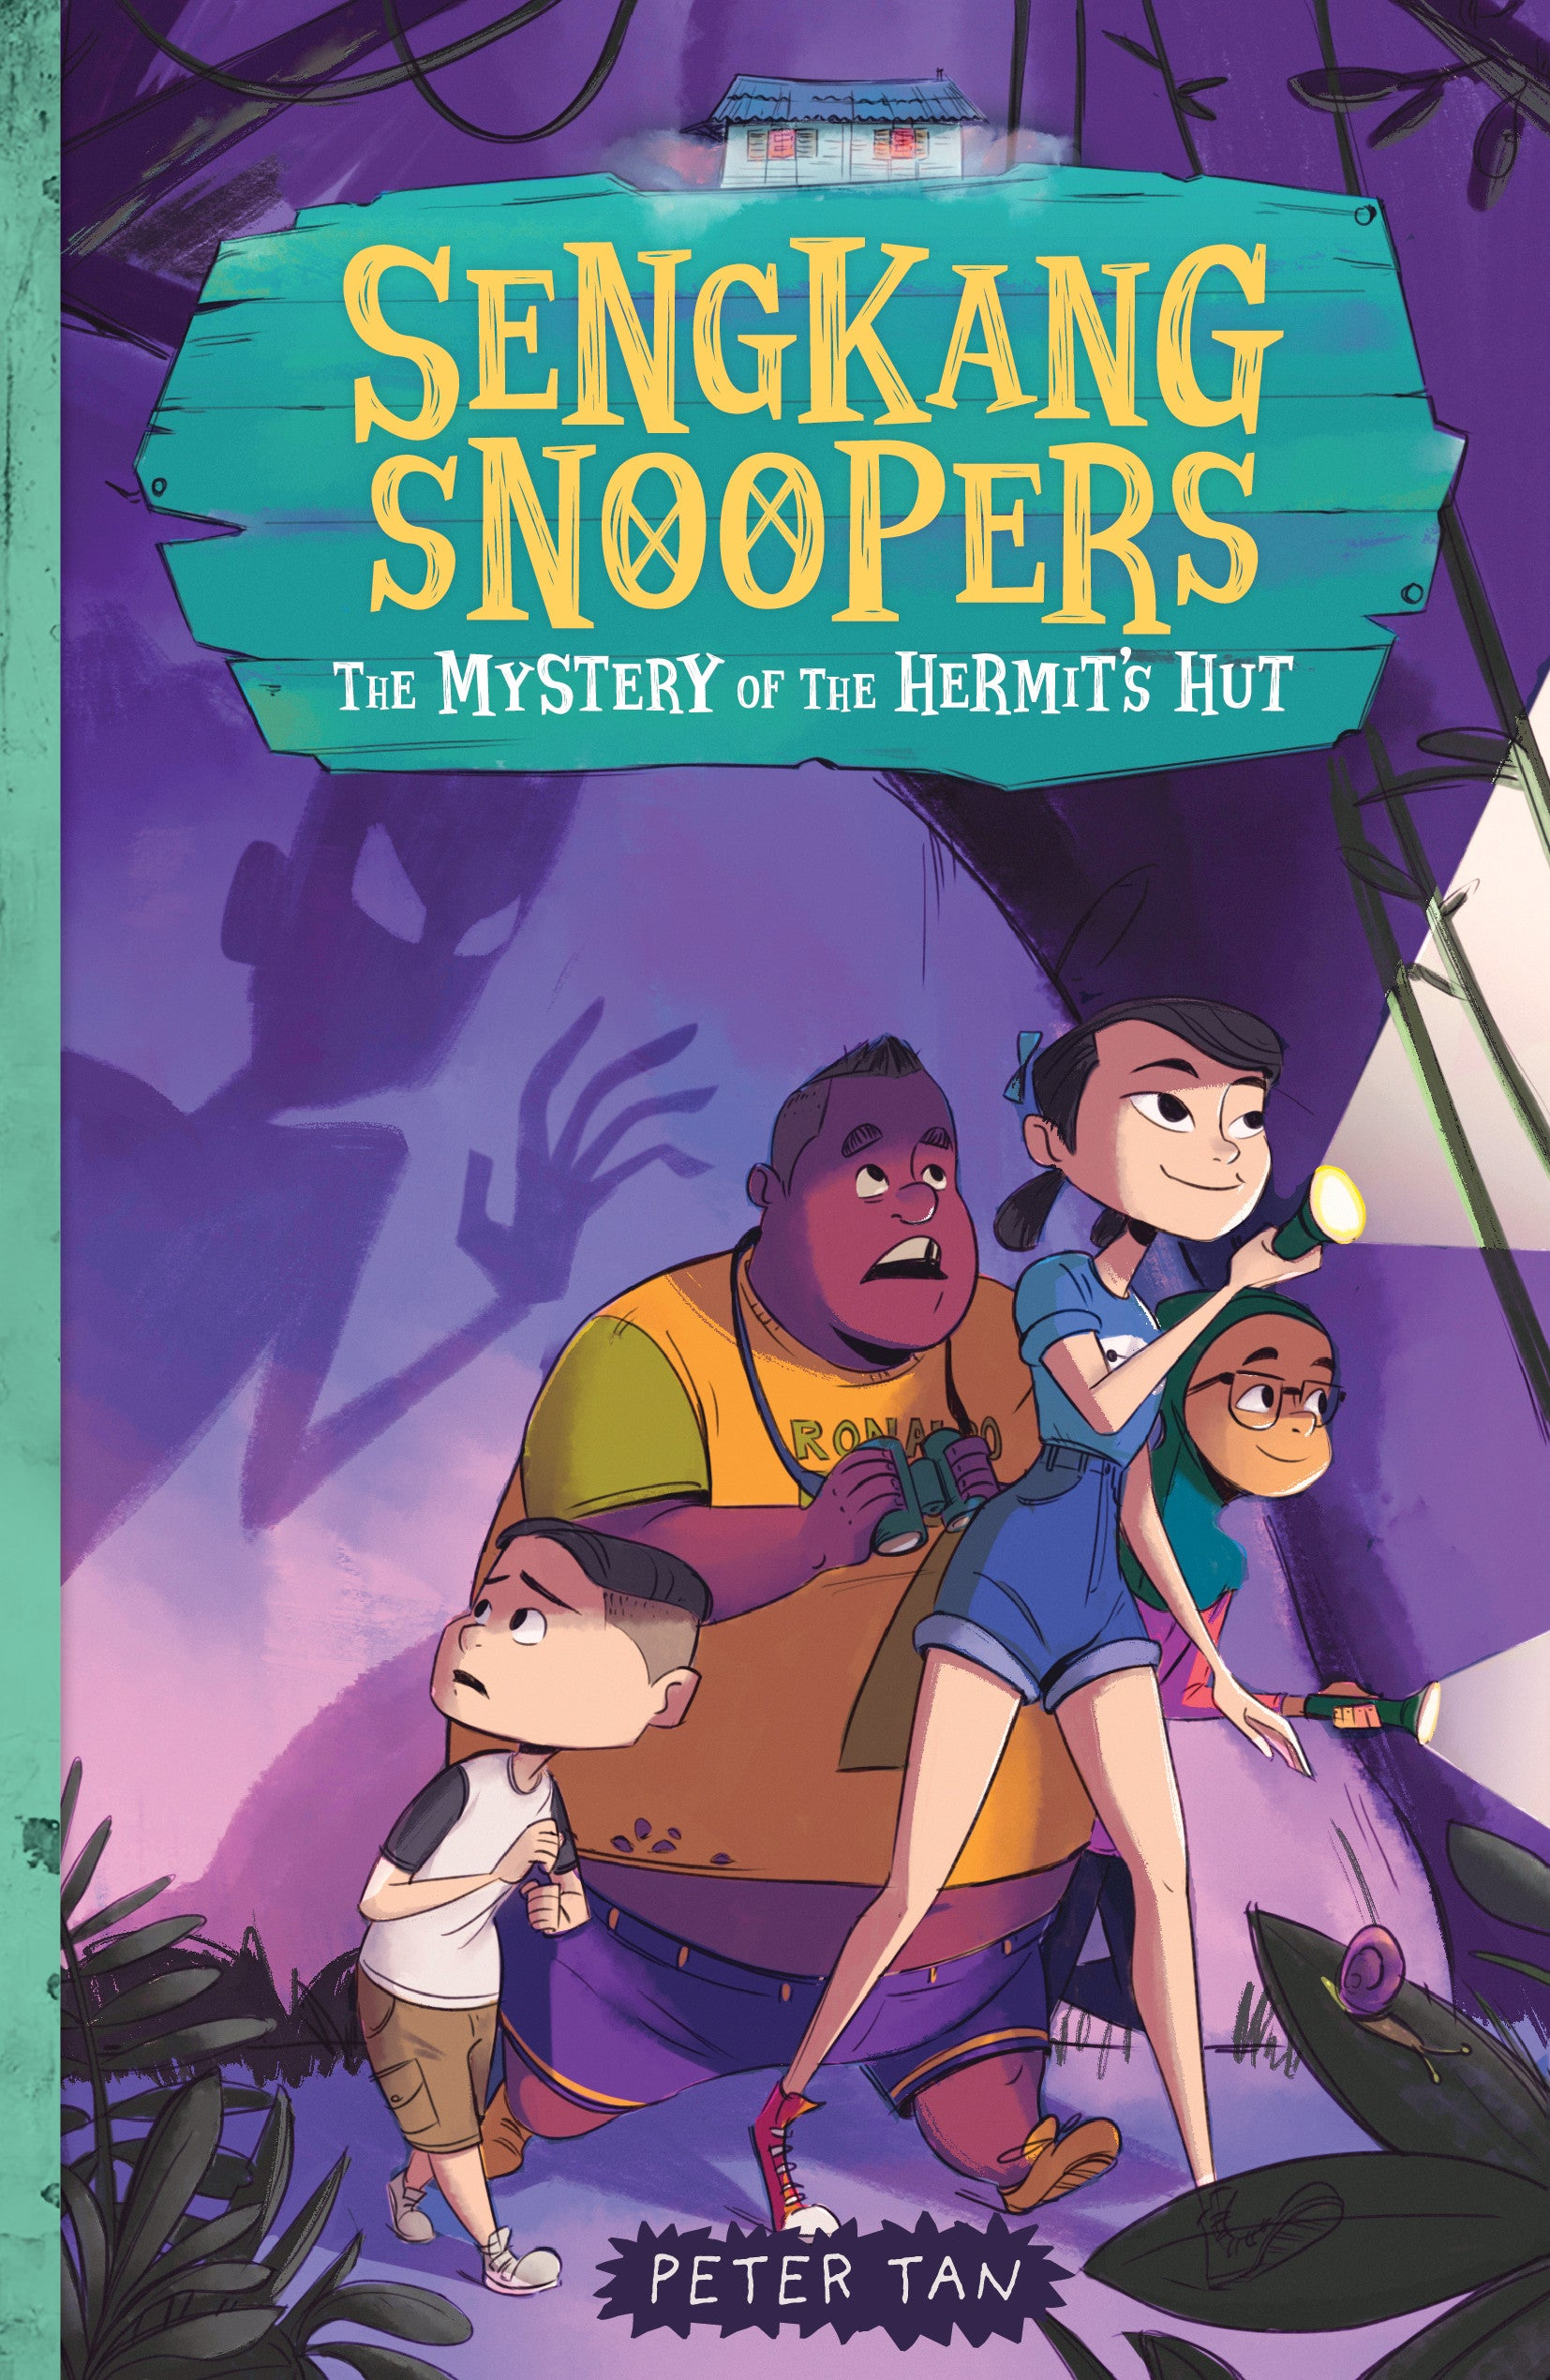 Sengkang Snoopers: The Mystery of the Hermit's Hut (book 1)